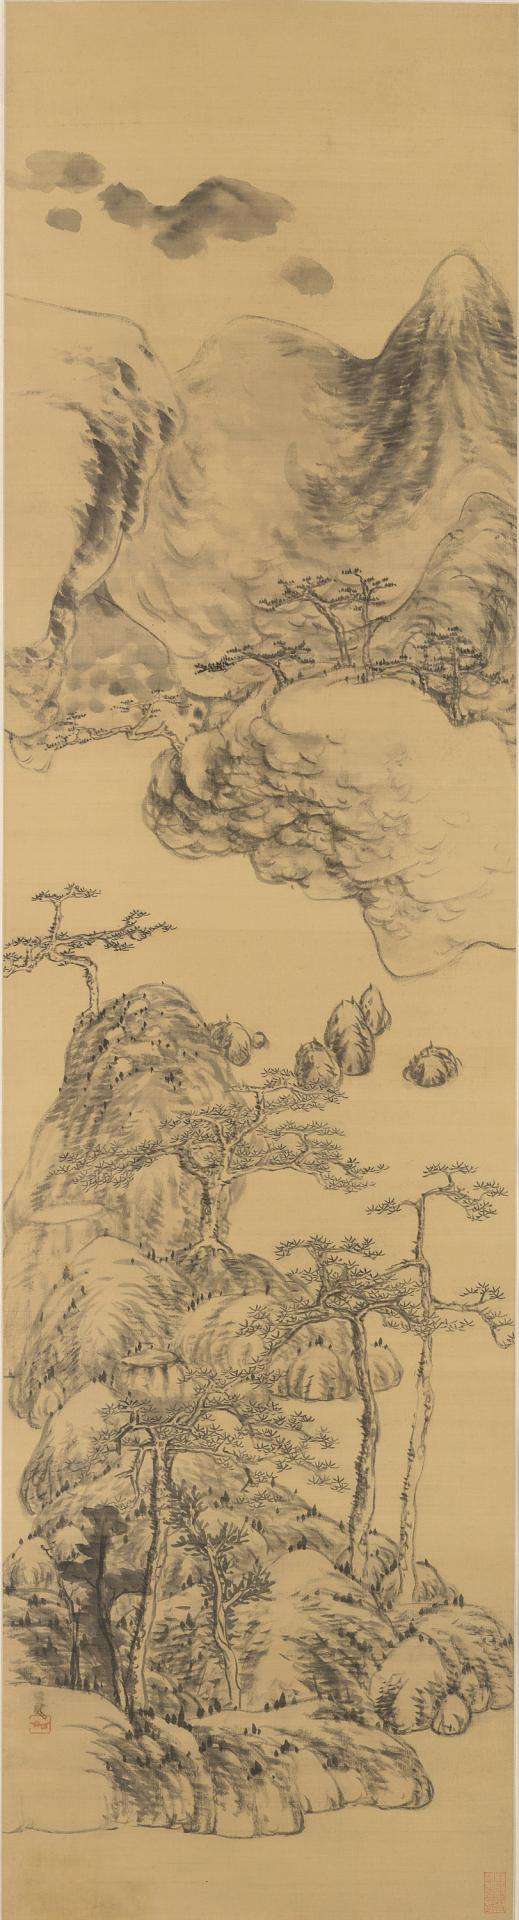 Landscape in the style of Wu Zhen, (1280-1354)